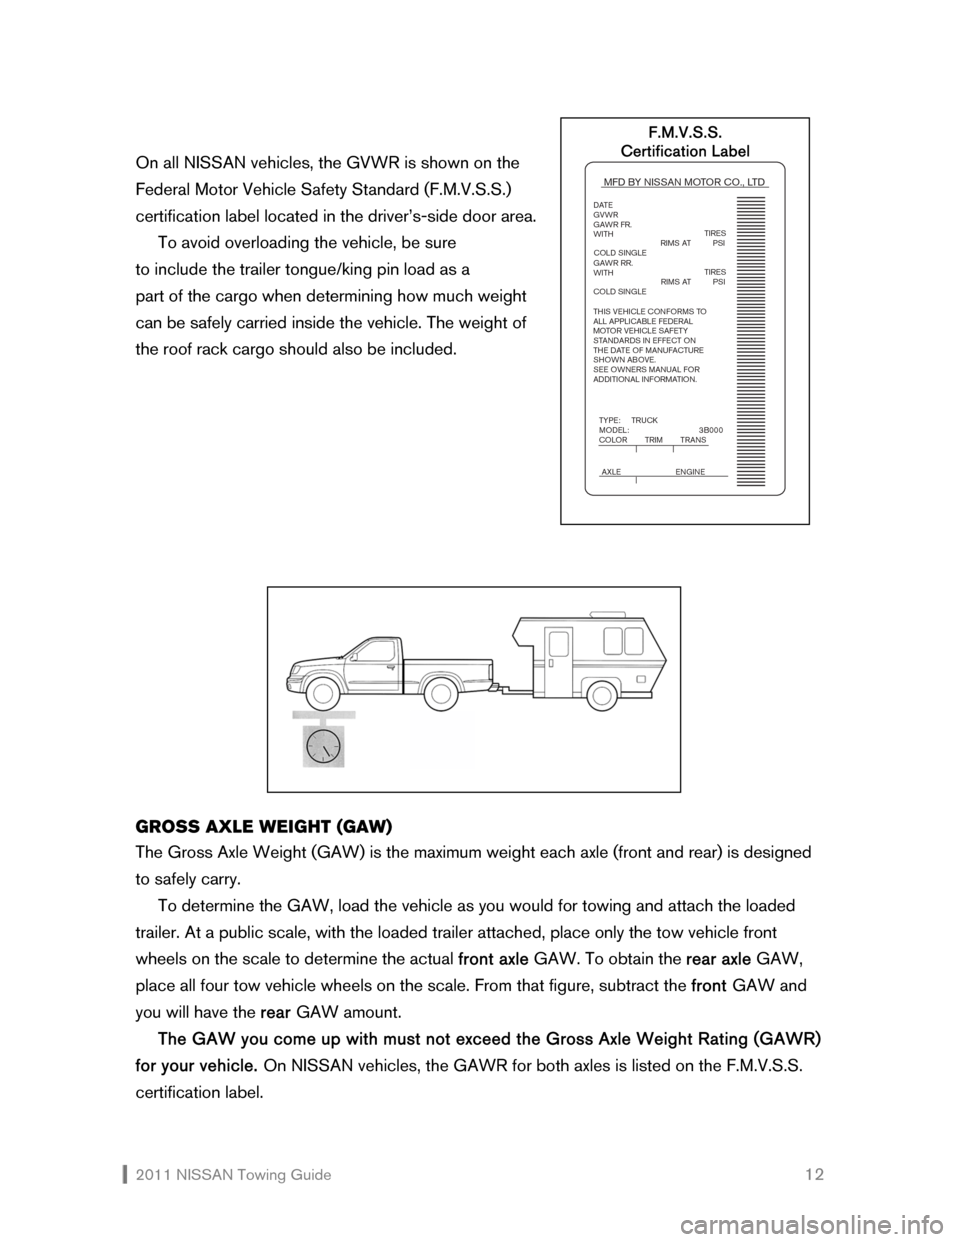 NISSAN SENTRA 2011 B16 / 6.G Towing Guide, Page 13